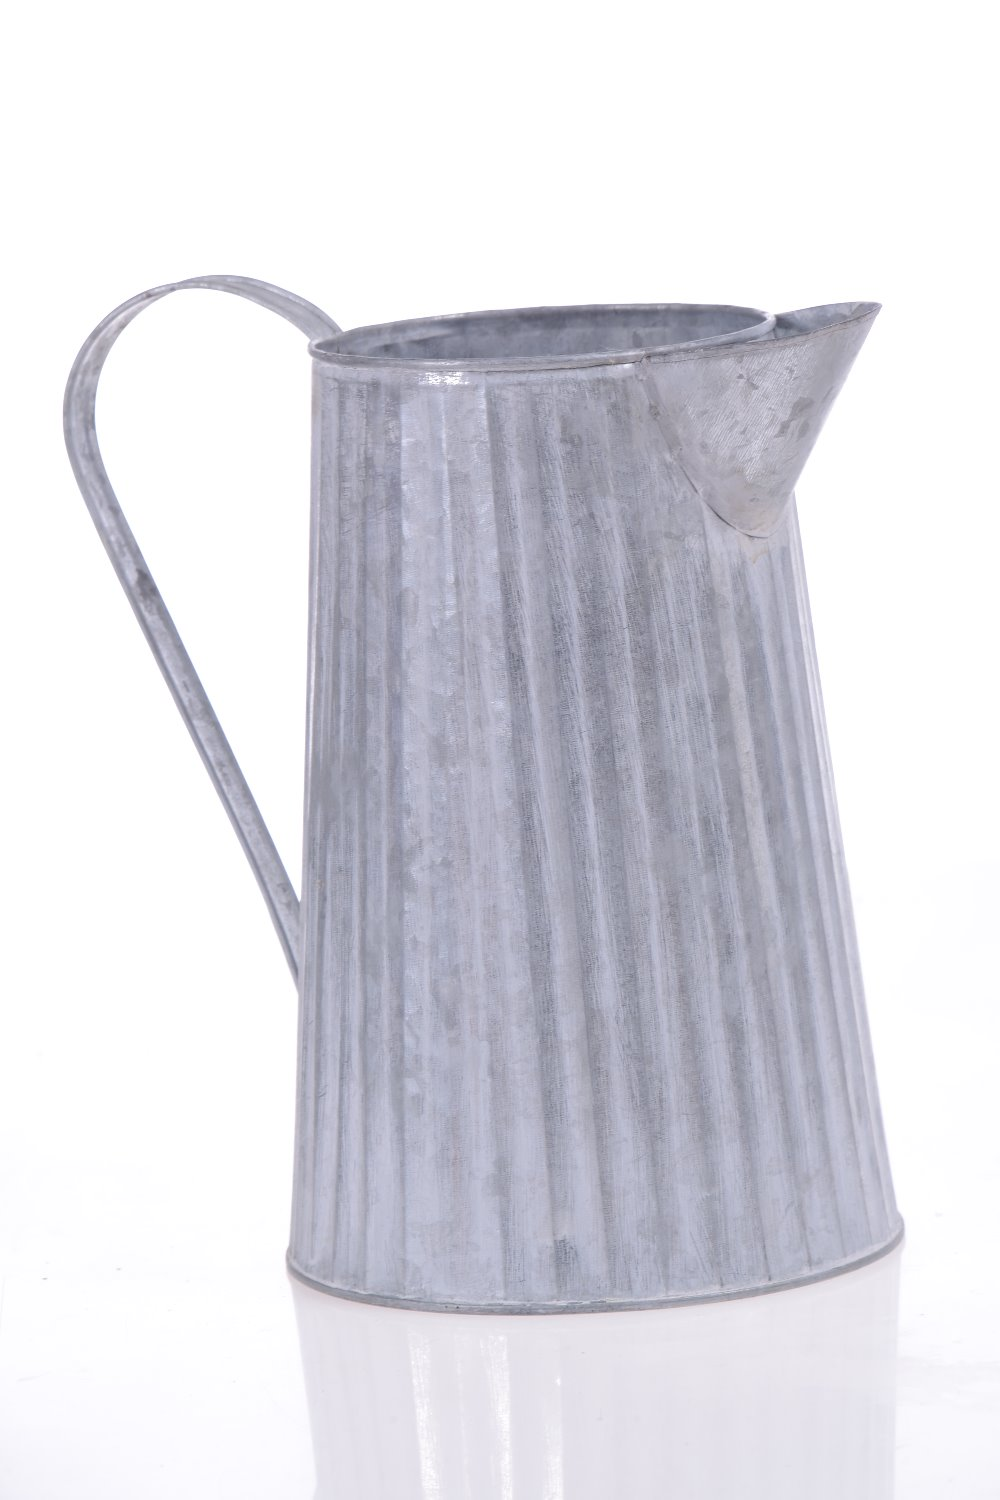 JUGS + WATERING CANS